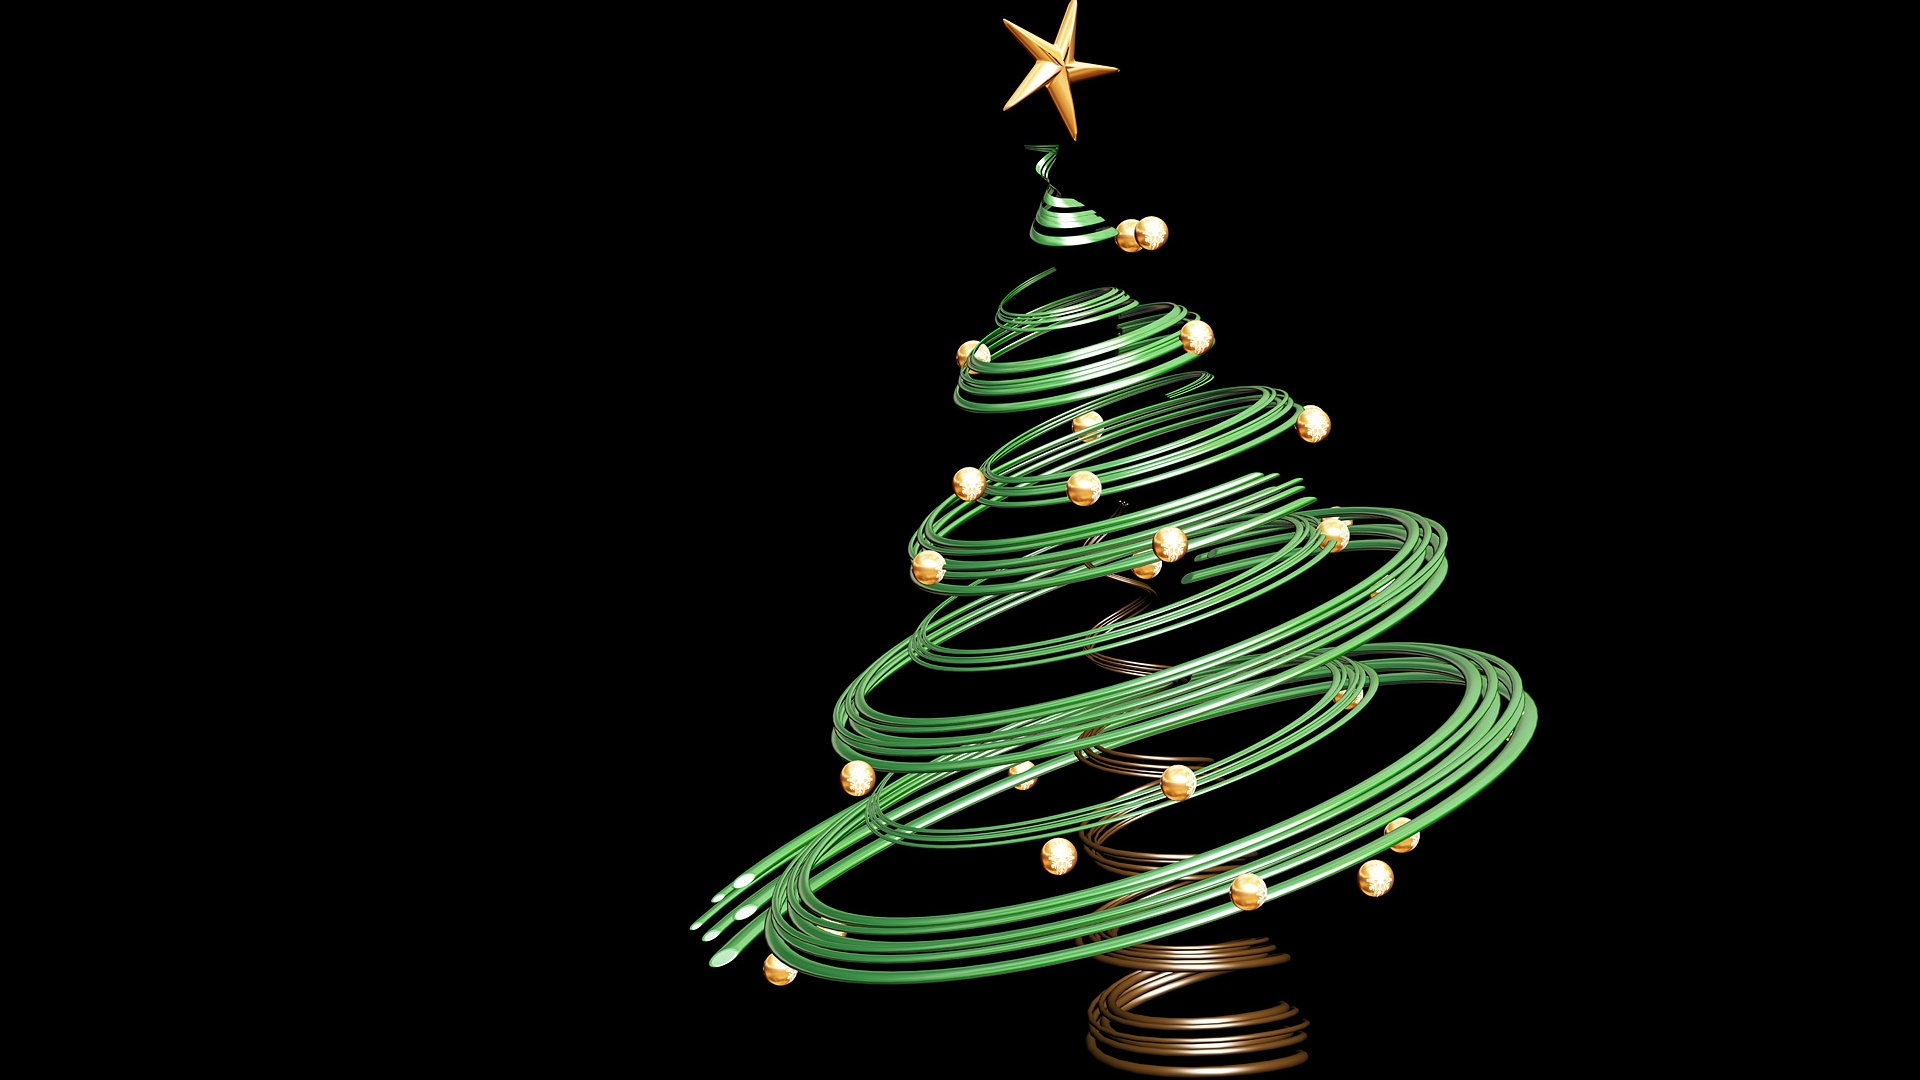 Christmas Tree Graphic 1920x1080 Ornaments Wallpaper